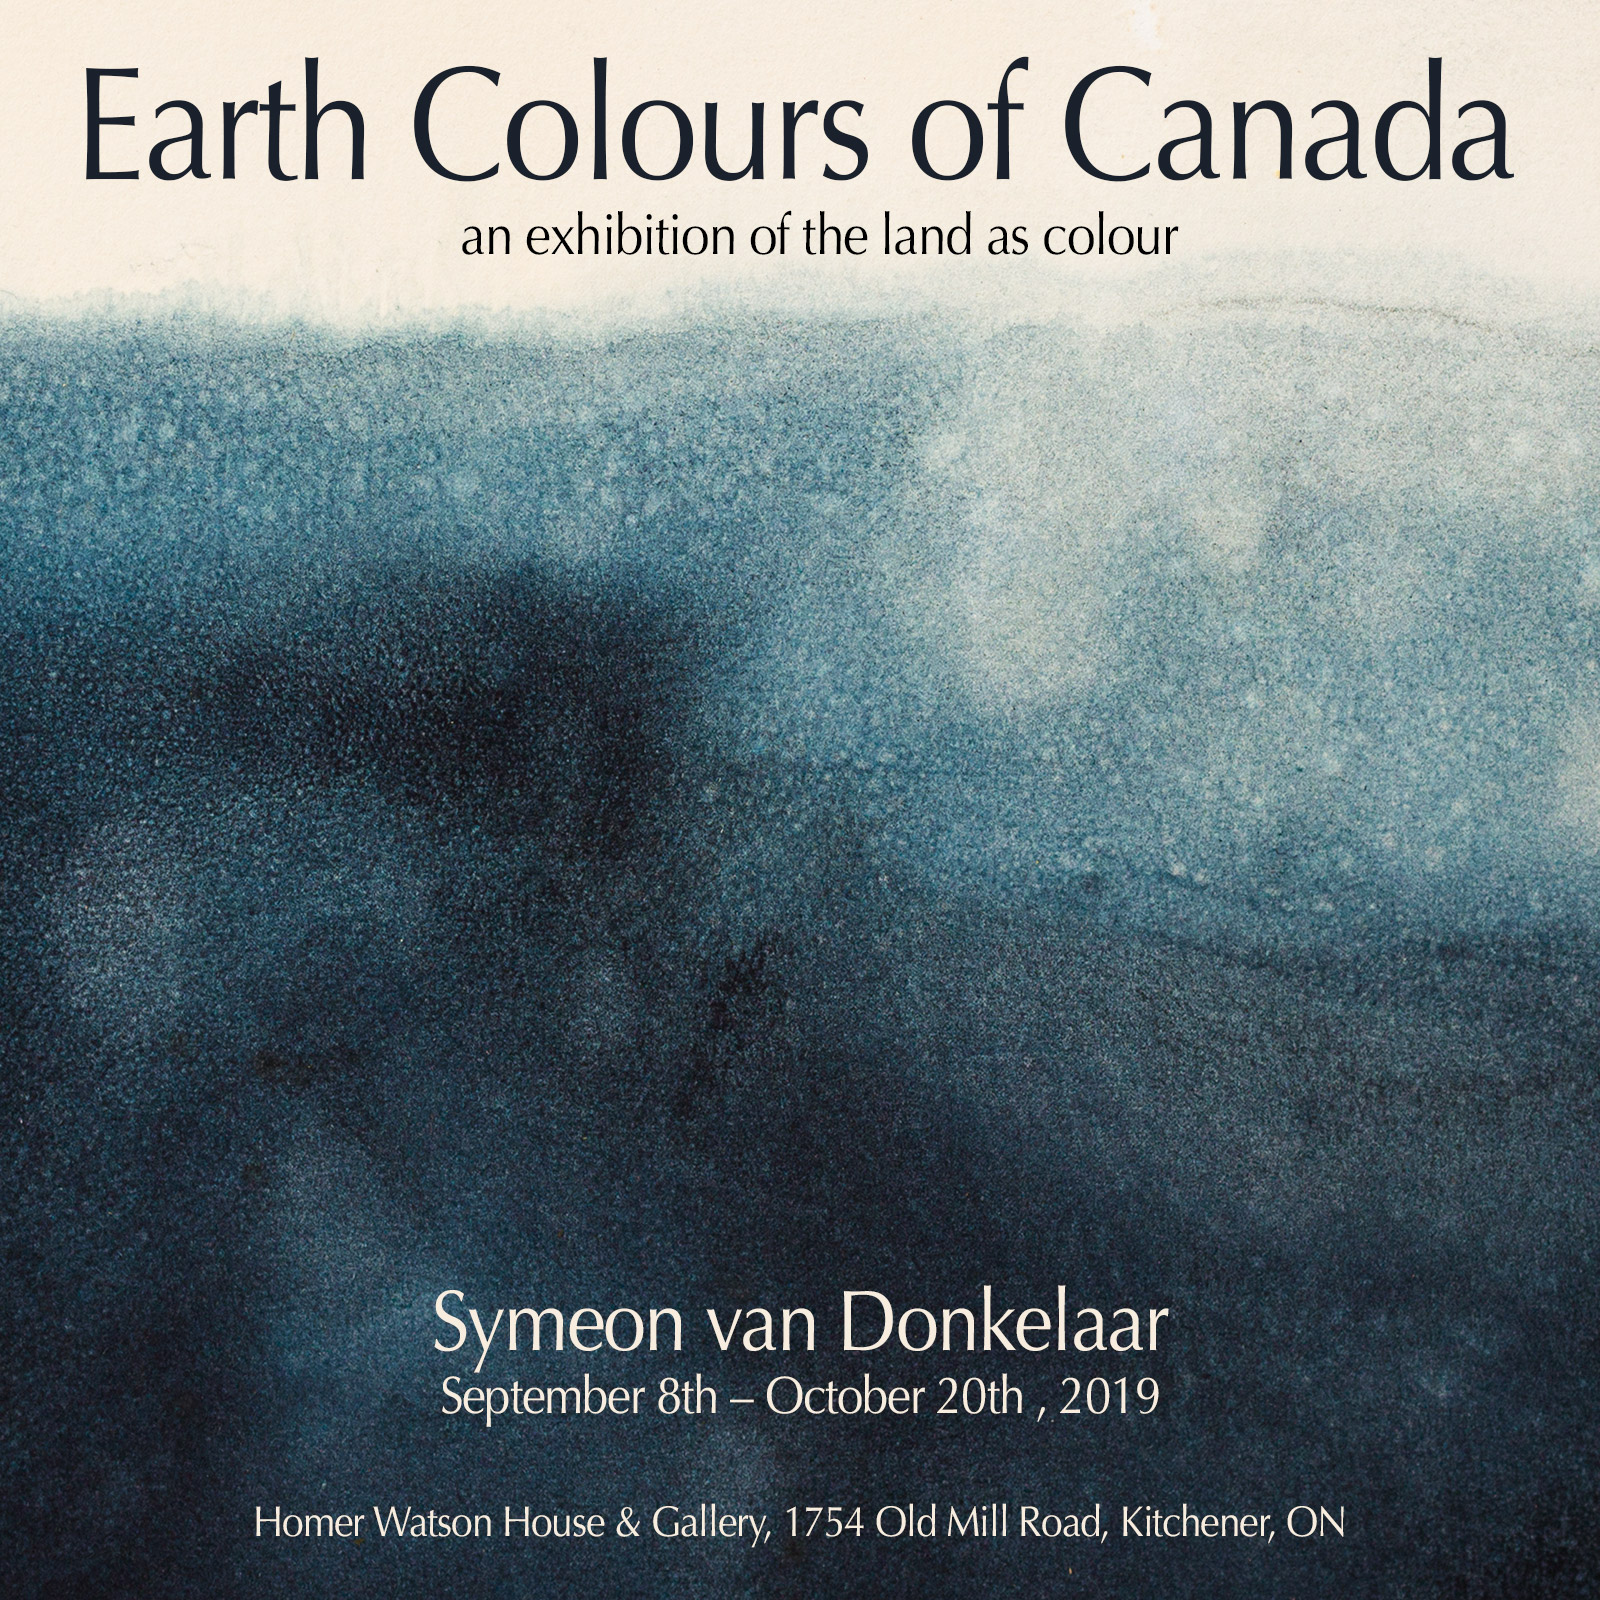 Earth Colours of Canada Exhibition Announcement